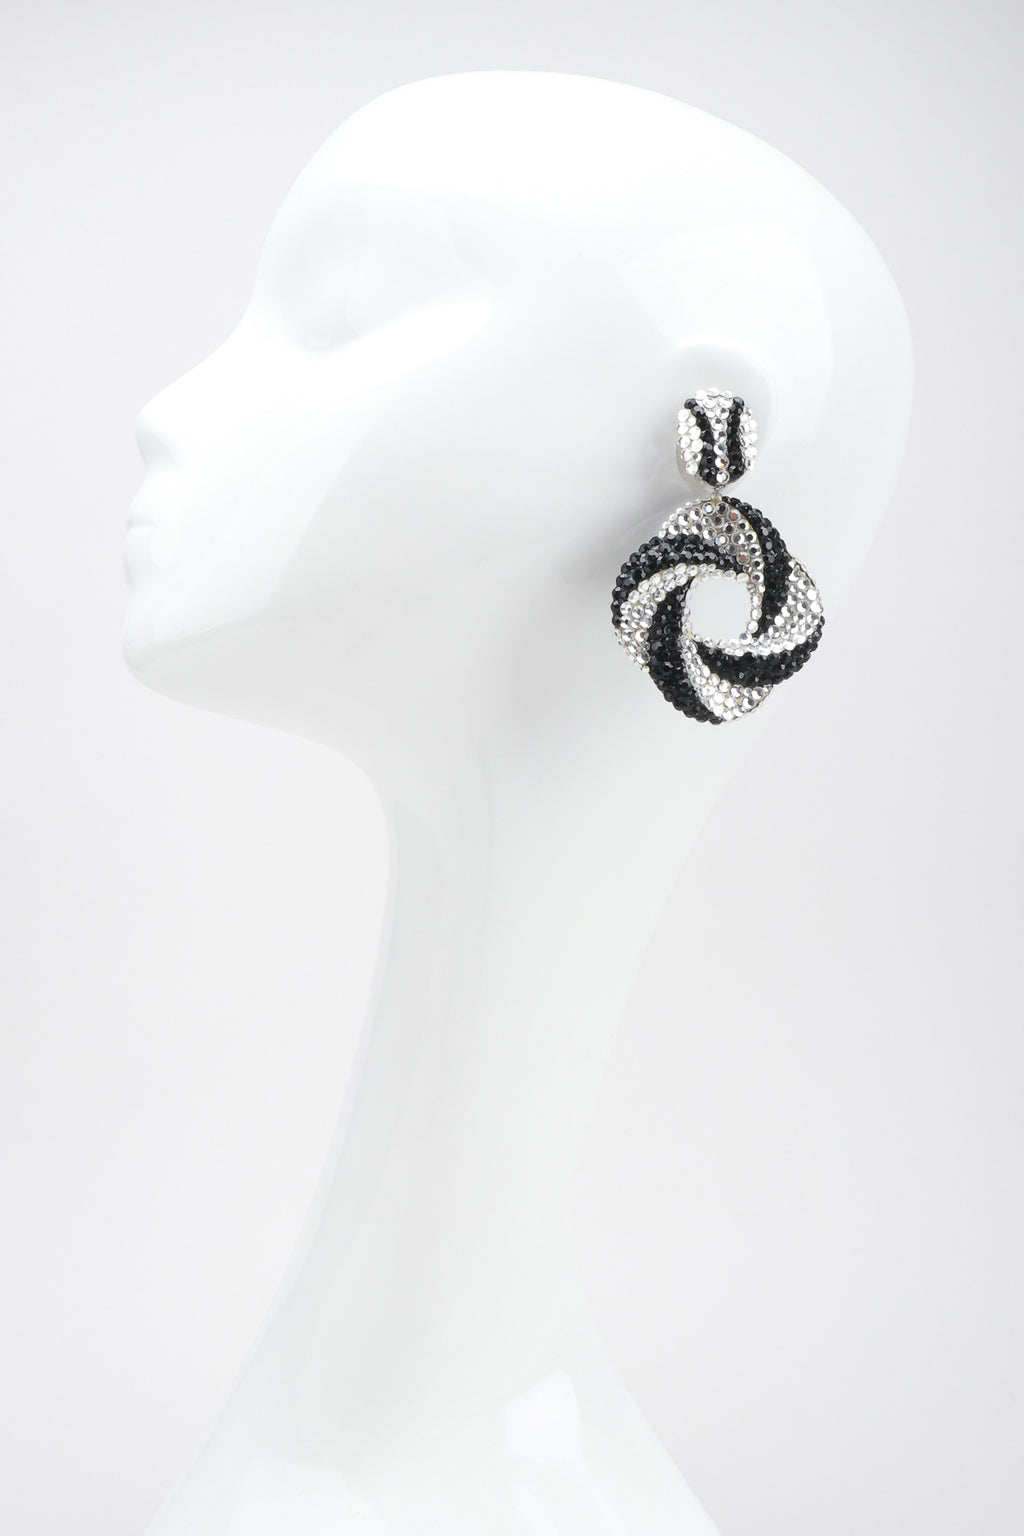 Recess Los Angeles Designer Consignment Vintage Richard Kerr Rhinestone Crystal Swirl Hoop Earrings